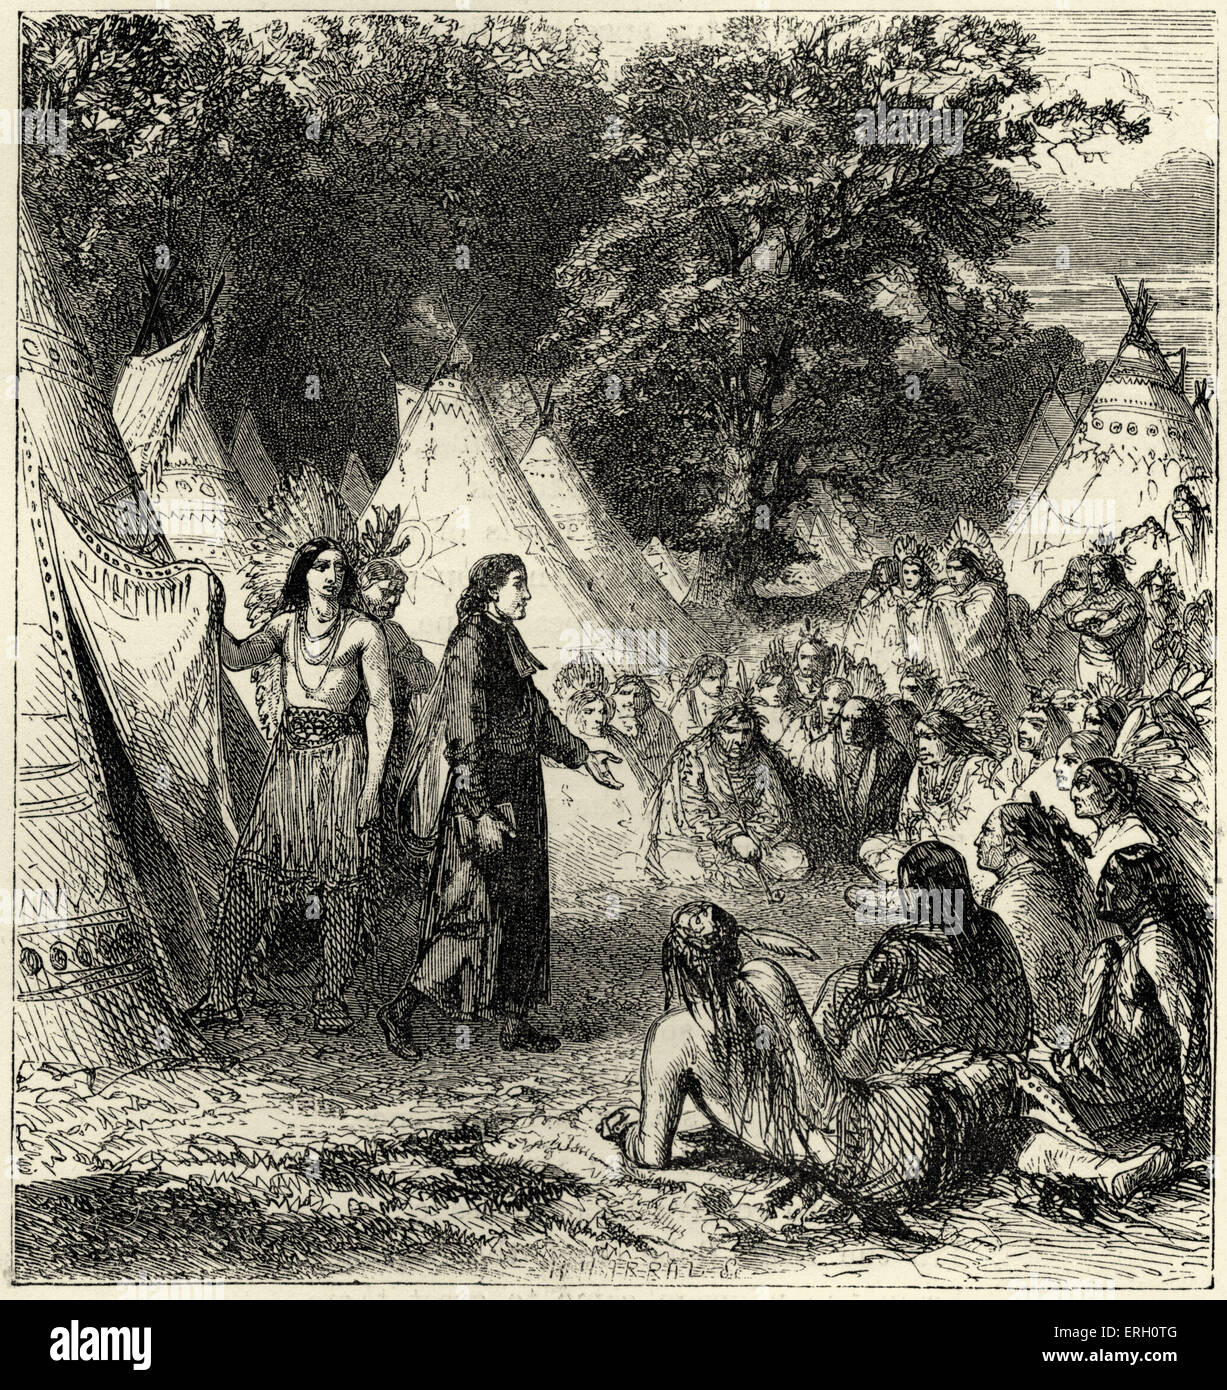 song of hiawatha by henry wadsworth longfellow hiawatha s stock christian missionary arrives at hiawatha s encampment henry wadsworth american lyric poet 27 1807 24 1882